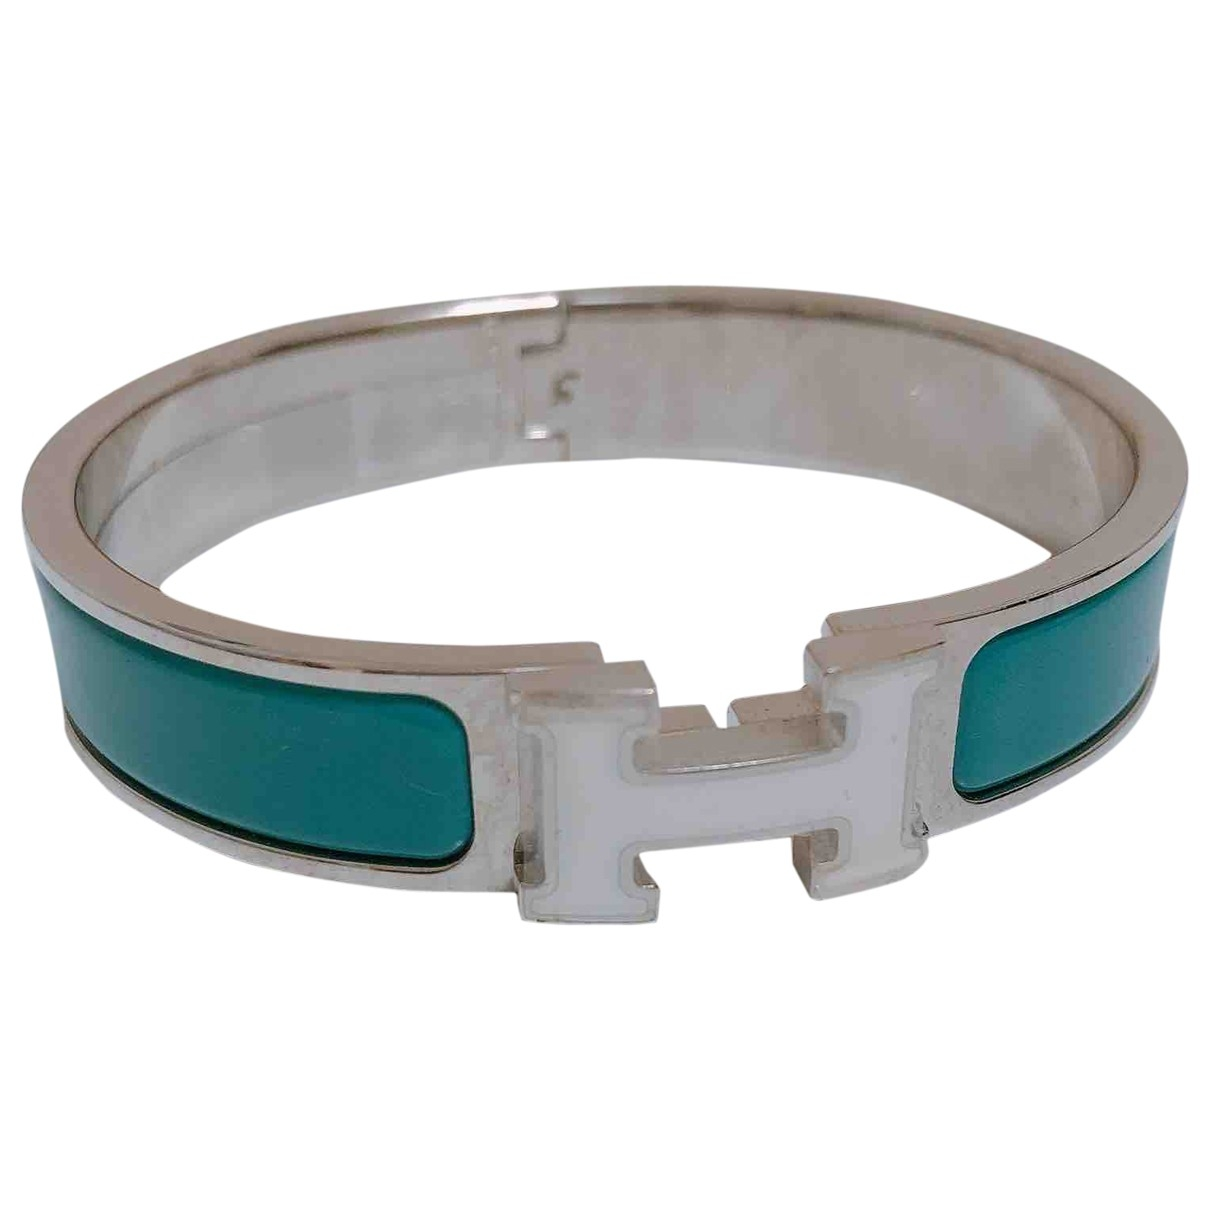 Hermes Clic H Armband in  Tuerkis Metall